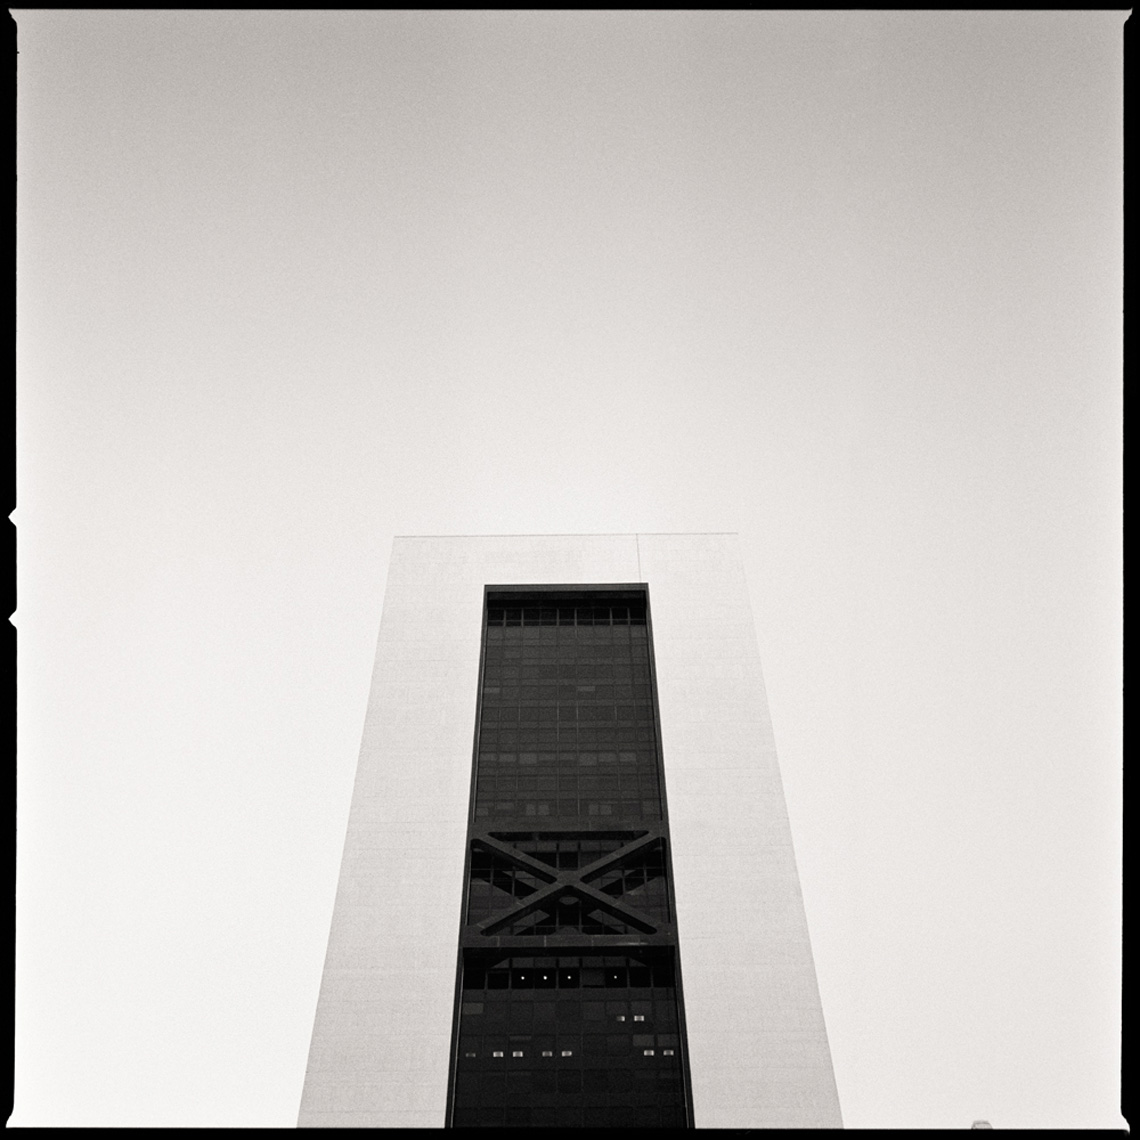 Sean Perry Photographs • The Solow Building, from the series Monolith